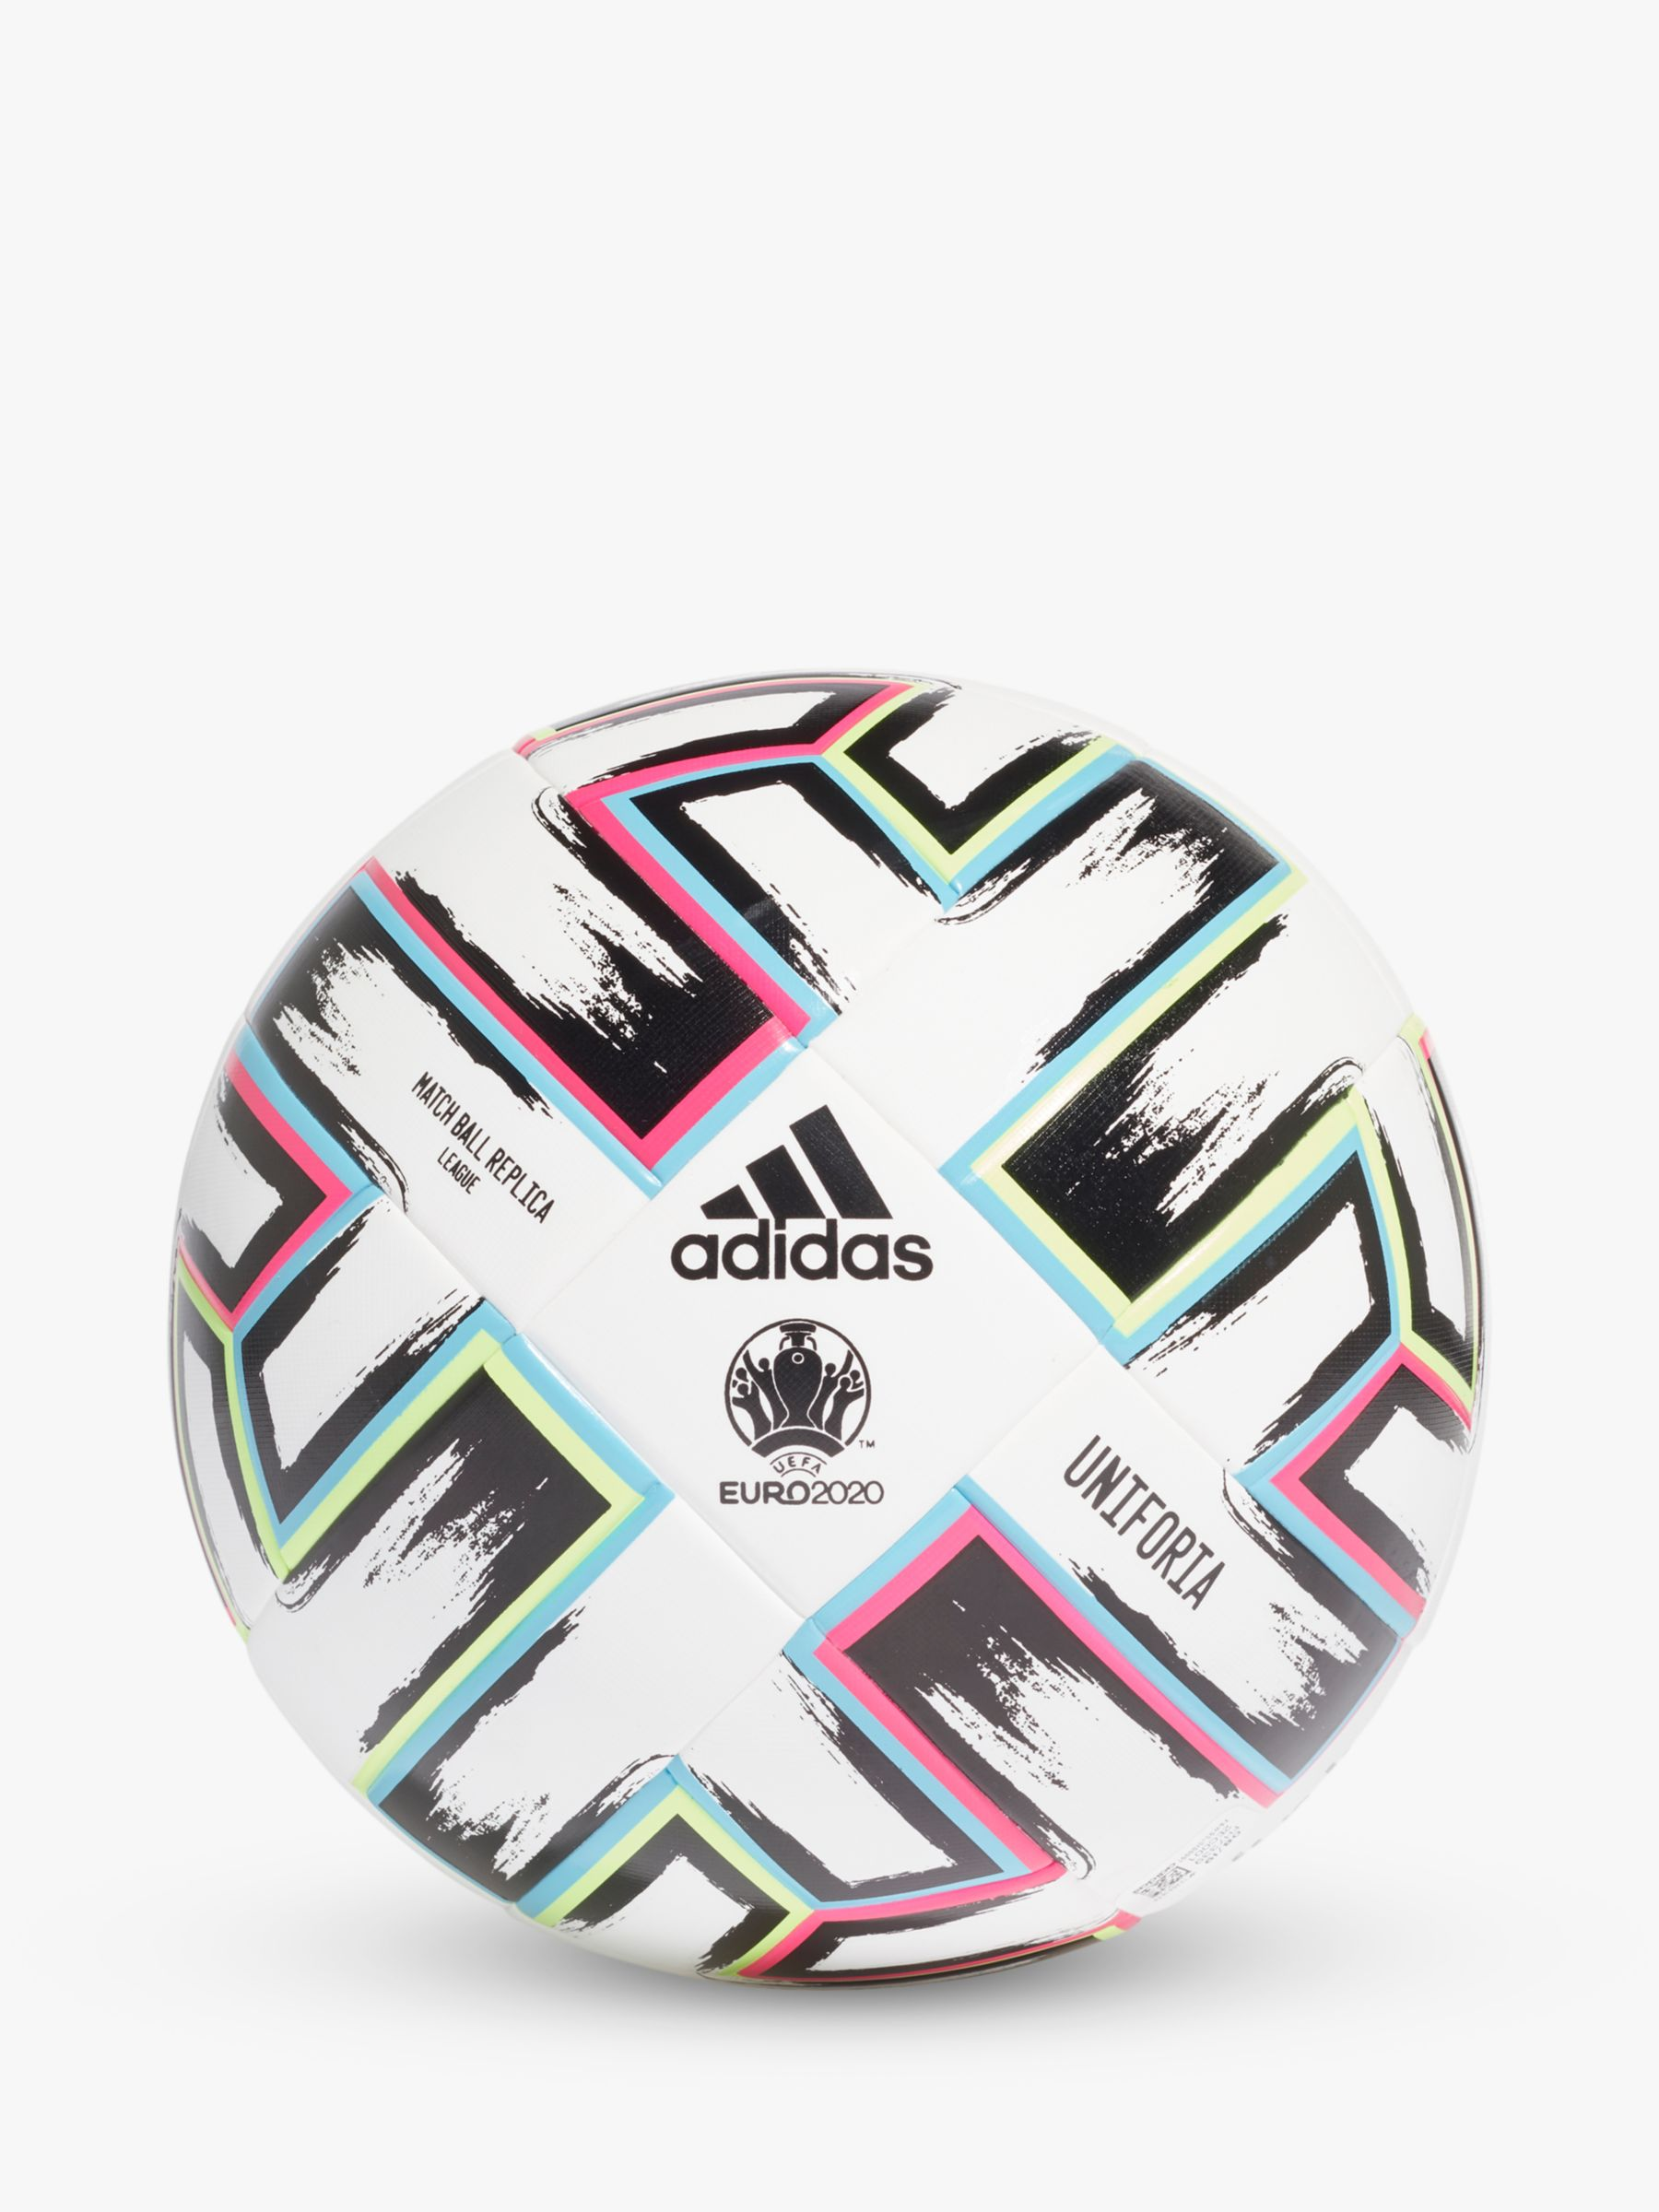 Adidas adidas UEFA EURO 2020 Uniforia League Football, Size 5